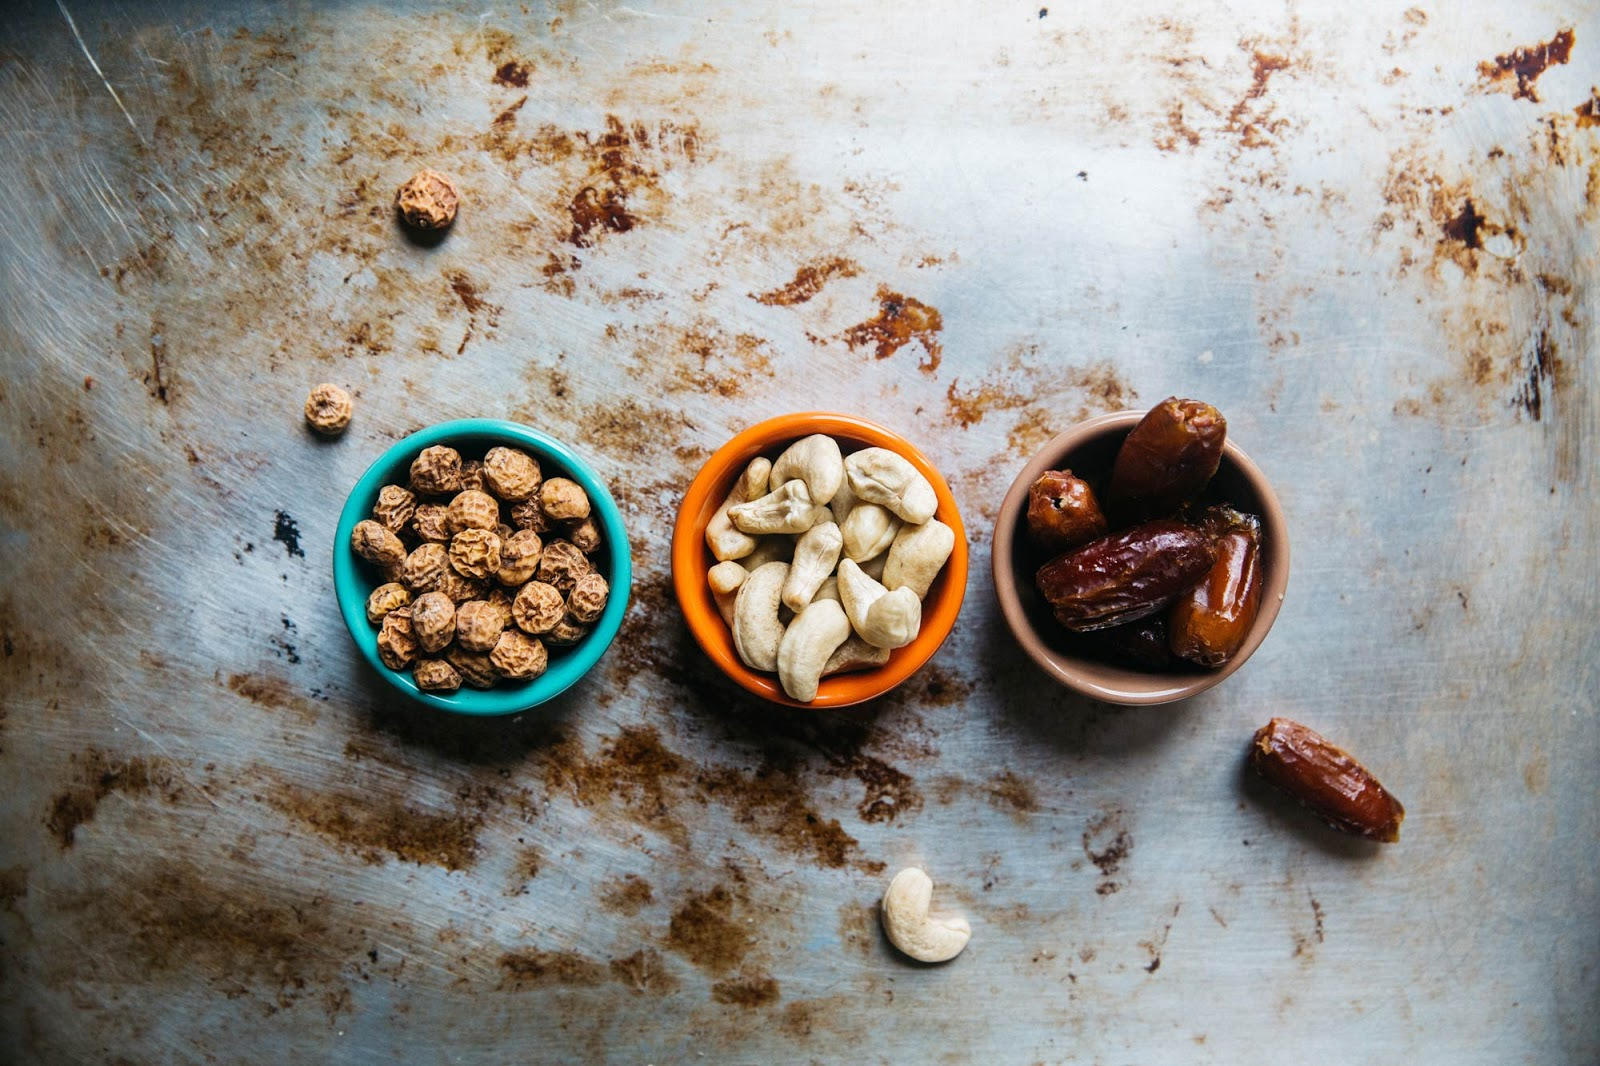 three bowls, each filled with walnuts, cashew nuts, and dates